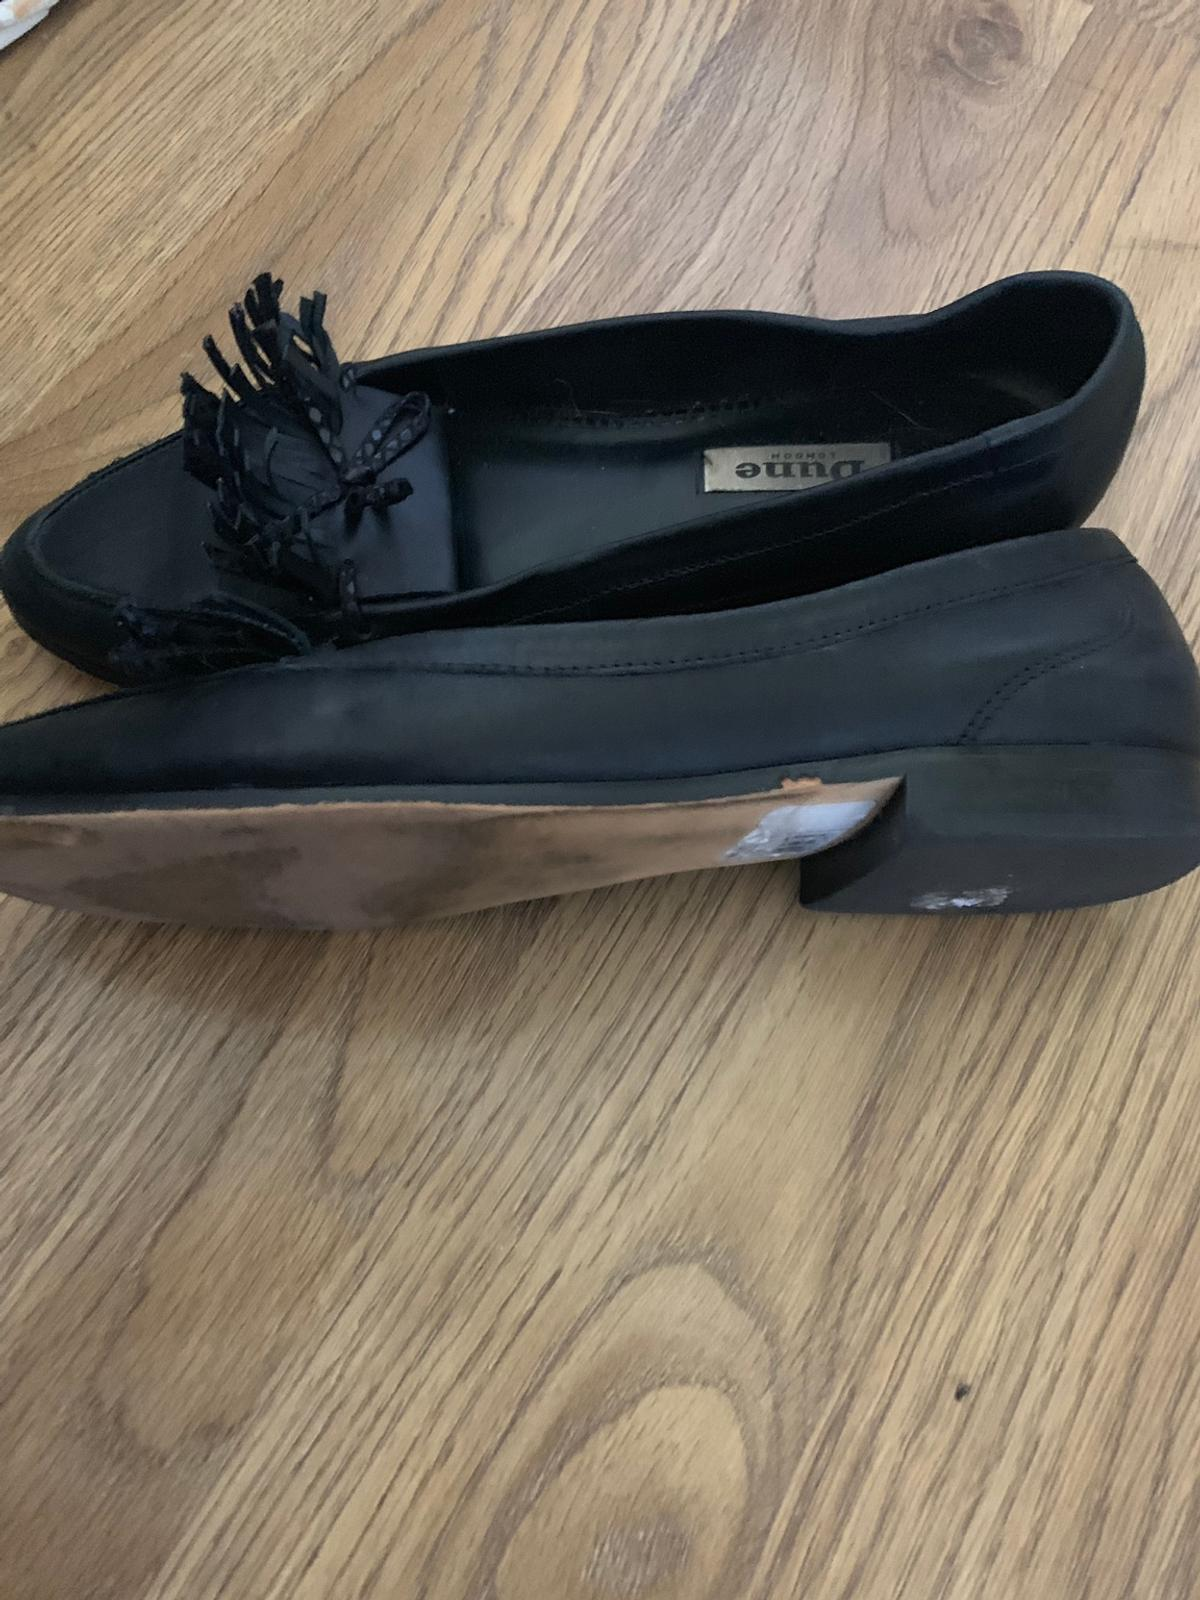 Retail brand is Dune  Size 5.5.  Real leather and good quality.  Worn.